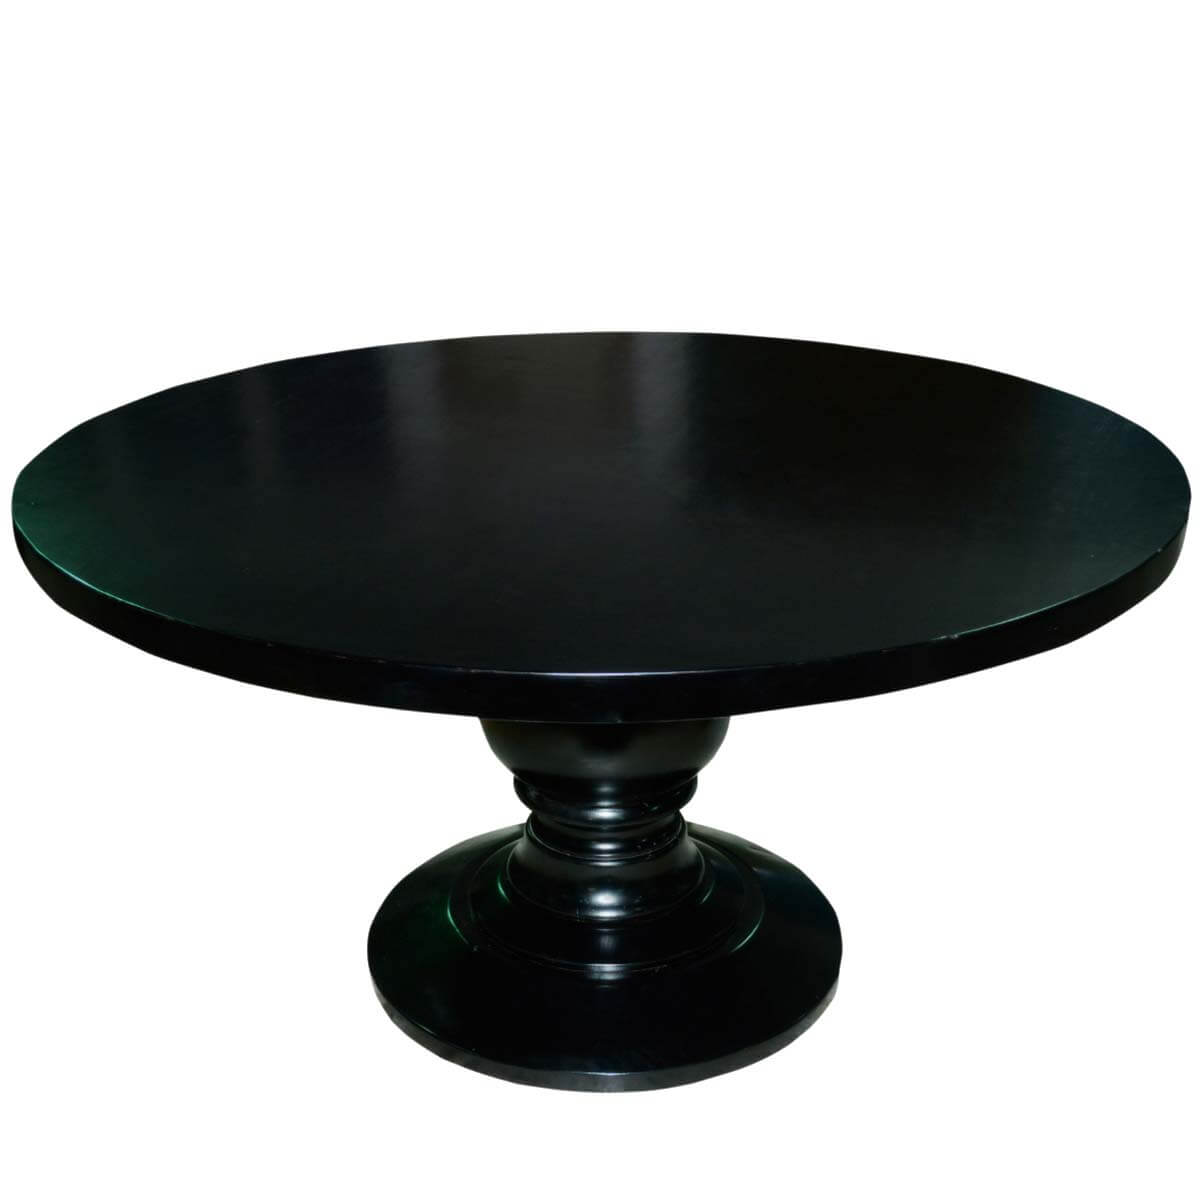 Sutton black baluster pedestal traditional wood round for Black wood dining table